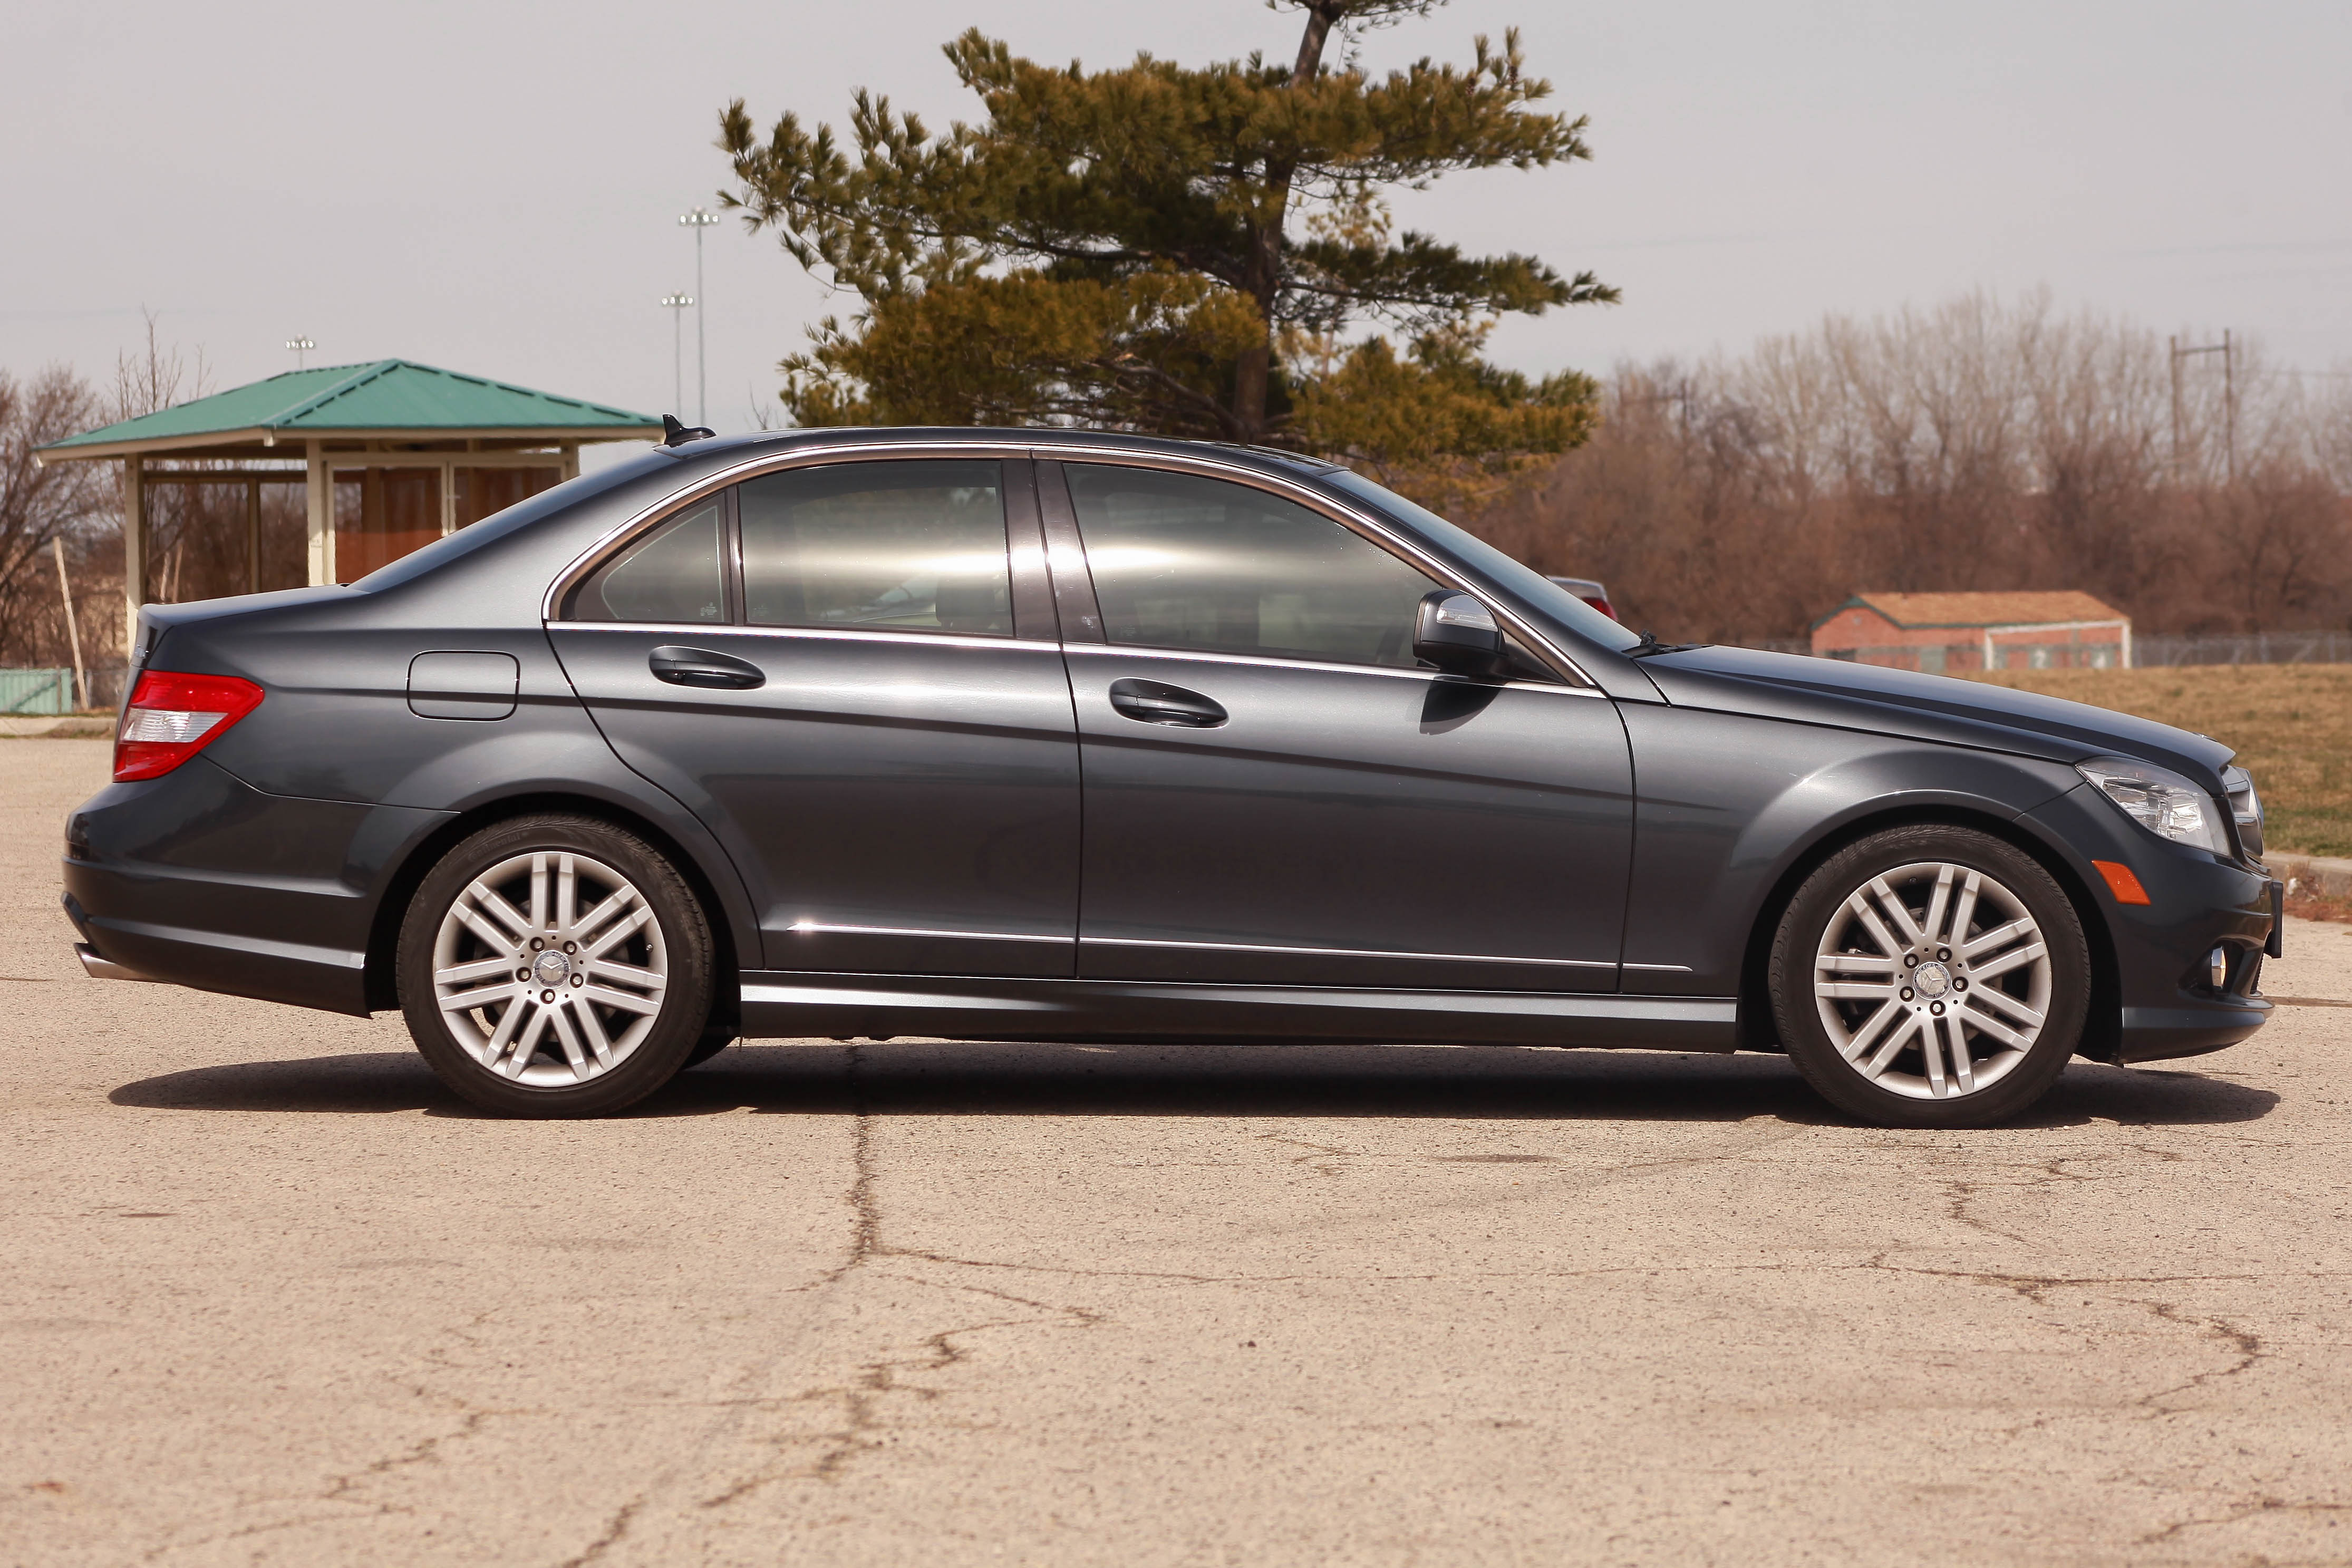 2008 mercedes benz c300 4matic navigation harman kardon for 2008 mercedes benz c300